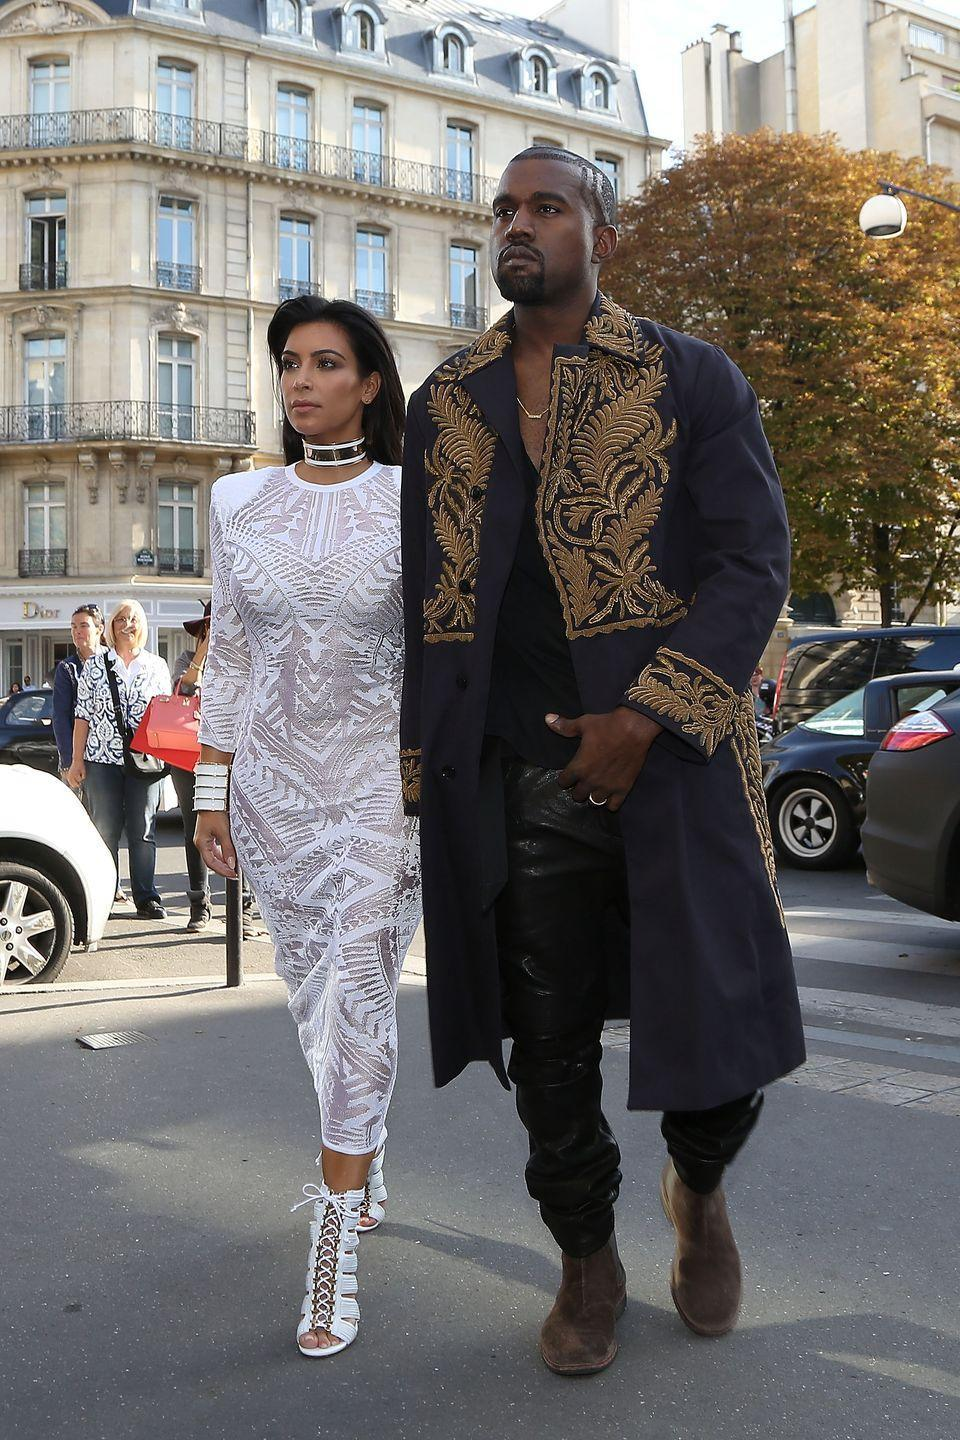 """<p>The world was almost robbed of witnessing Kim and Kayne's Italian wedding. Thankfully, Kim's assistant filmed the <a href=""""https://www.hollywoodreporter.com/features/kardashian-decade-how-a-sex-tape-led-a-billion-dollar-brand-1029592"""" rel=""""nofollow noopener"""" target=""""_blank"""" data-ylk=""""slk:whole thing on a handycam"""" class=""""link rapid-noclick-resp"""">whole thing on a handycam</a> and Kim ended up liking the footage so much that <a href=""""https://www.hollywoodreporter.com/features/kardashian-decade-how-a-sex-tape-led-a-billion-dollar-brand-1029592"""" rel=""""nofollow noopener"""" target=""""_blank"""" data-ylk=""""slk:they used it for the show"""" class=""""link rapid-noclick-resp"""">they used it for the show</a>.</p>"""